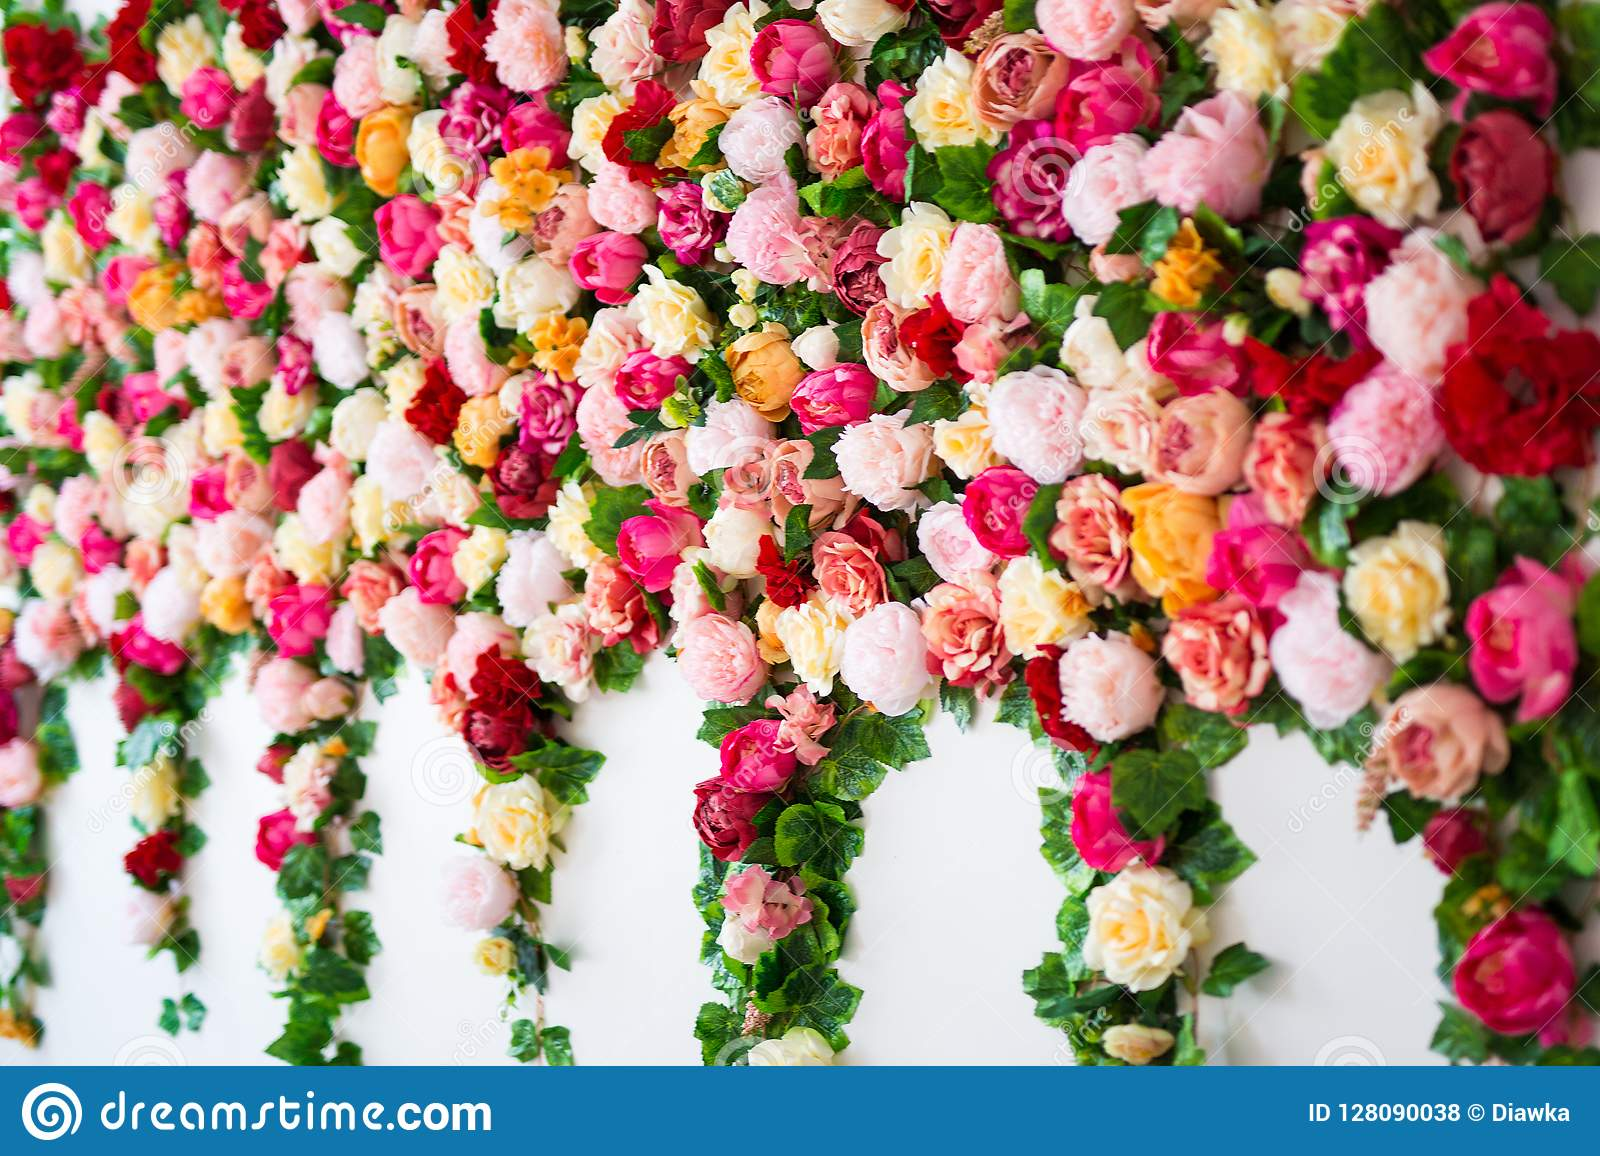 Wedding Decoration Flowers Wall Background With Colorful Roses Stock Photo Image Of Birthday Leaf 128090038